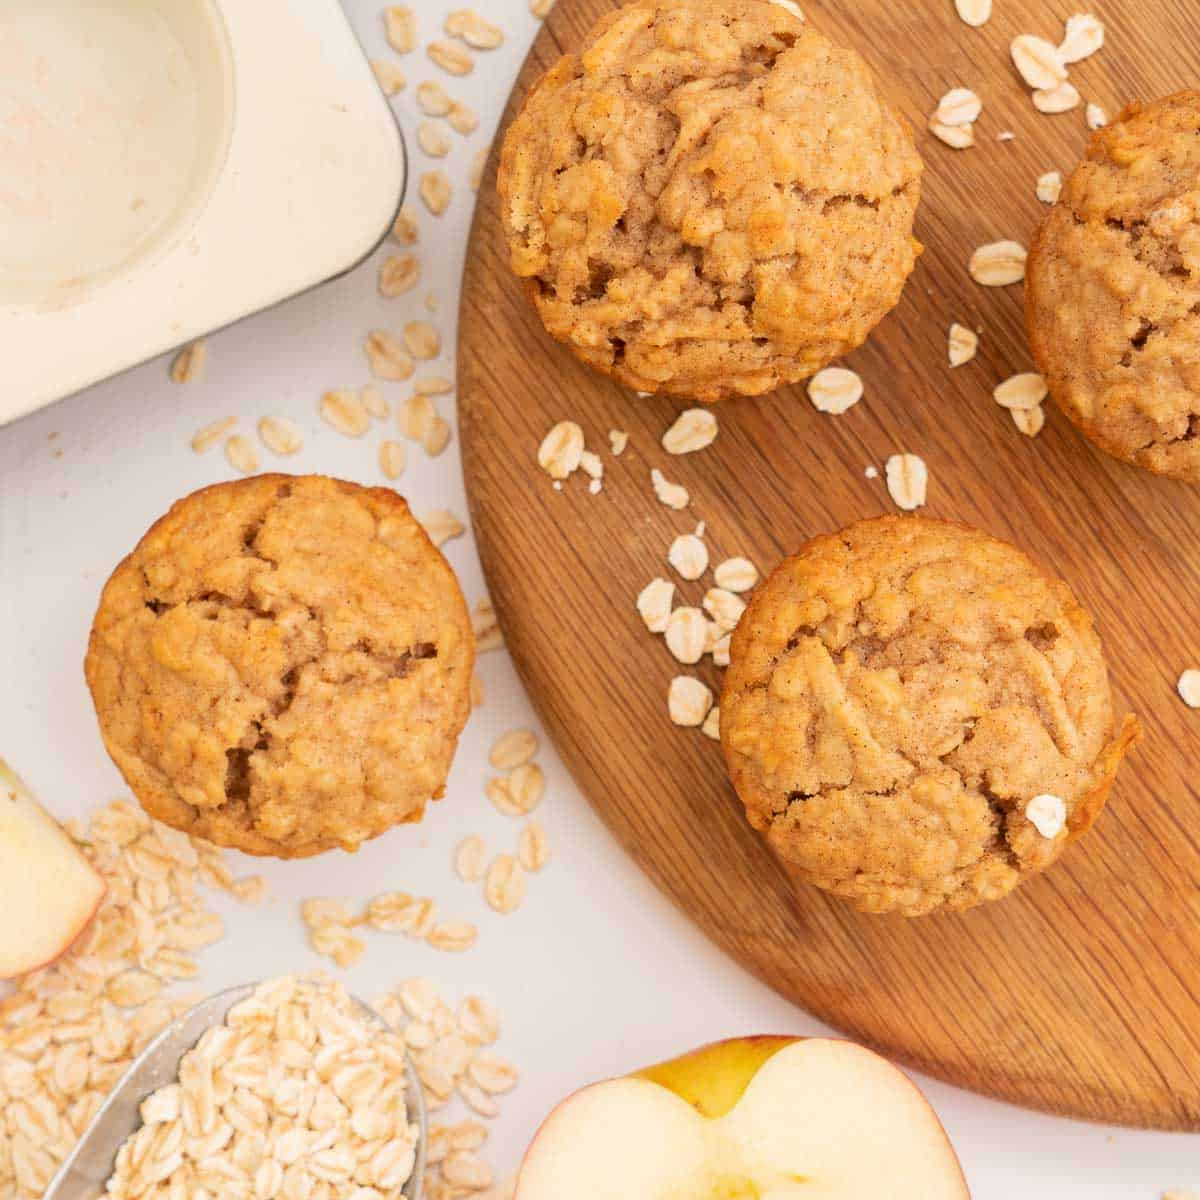 Over head shot of apple muffins on a wooden chopping board scattered with rolled oats.